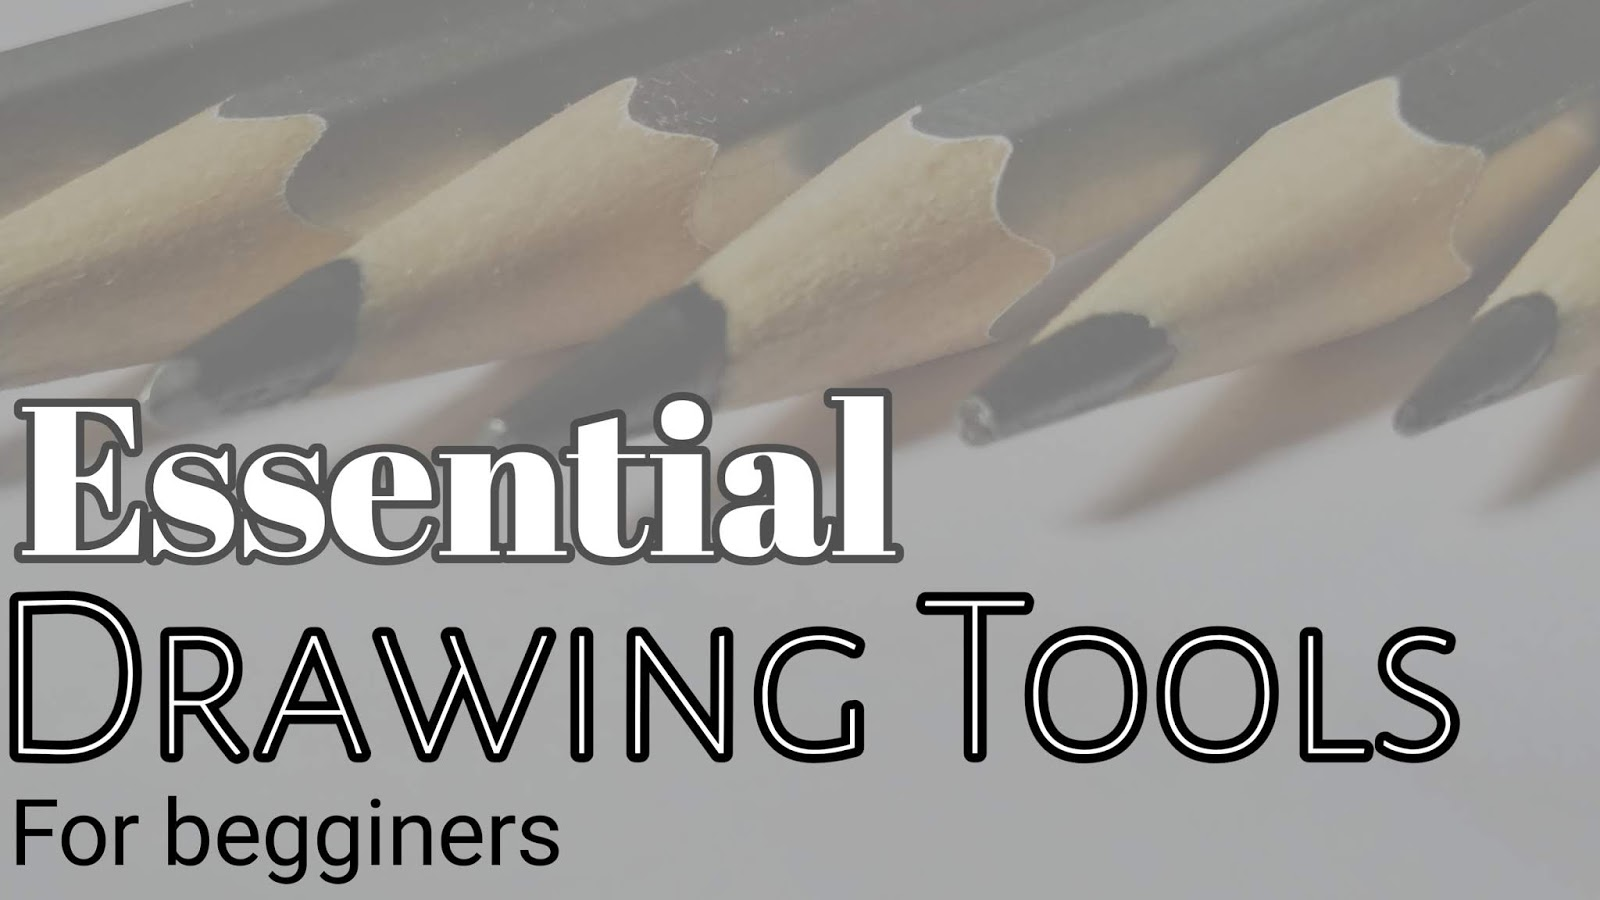 Drawing tools for beginners essential drawing tools for beginners artist drawing tools and accessories